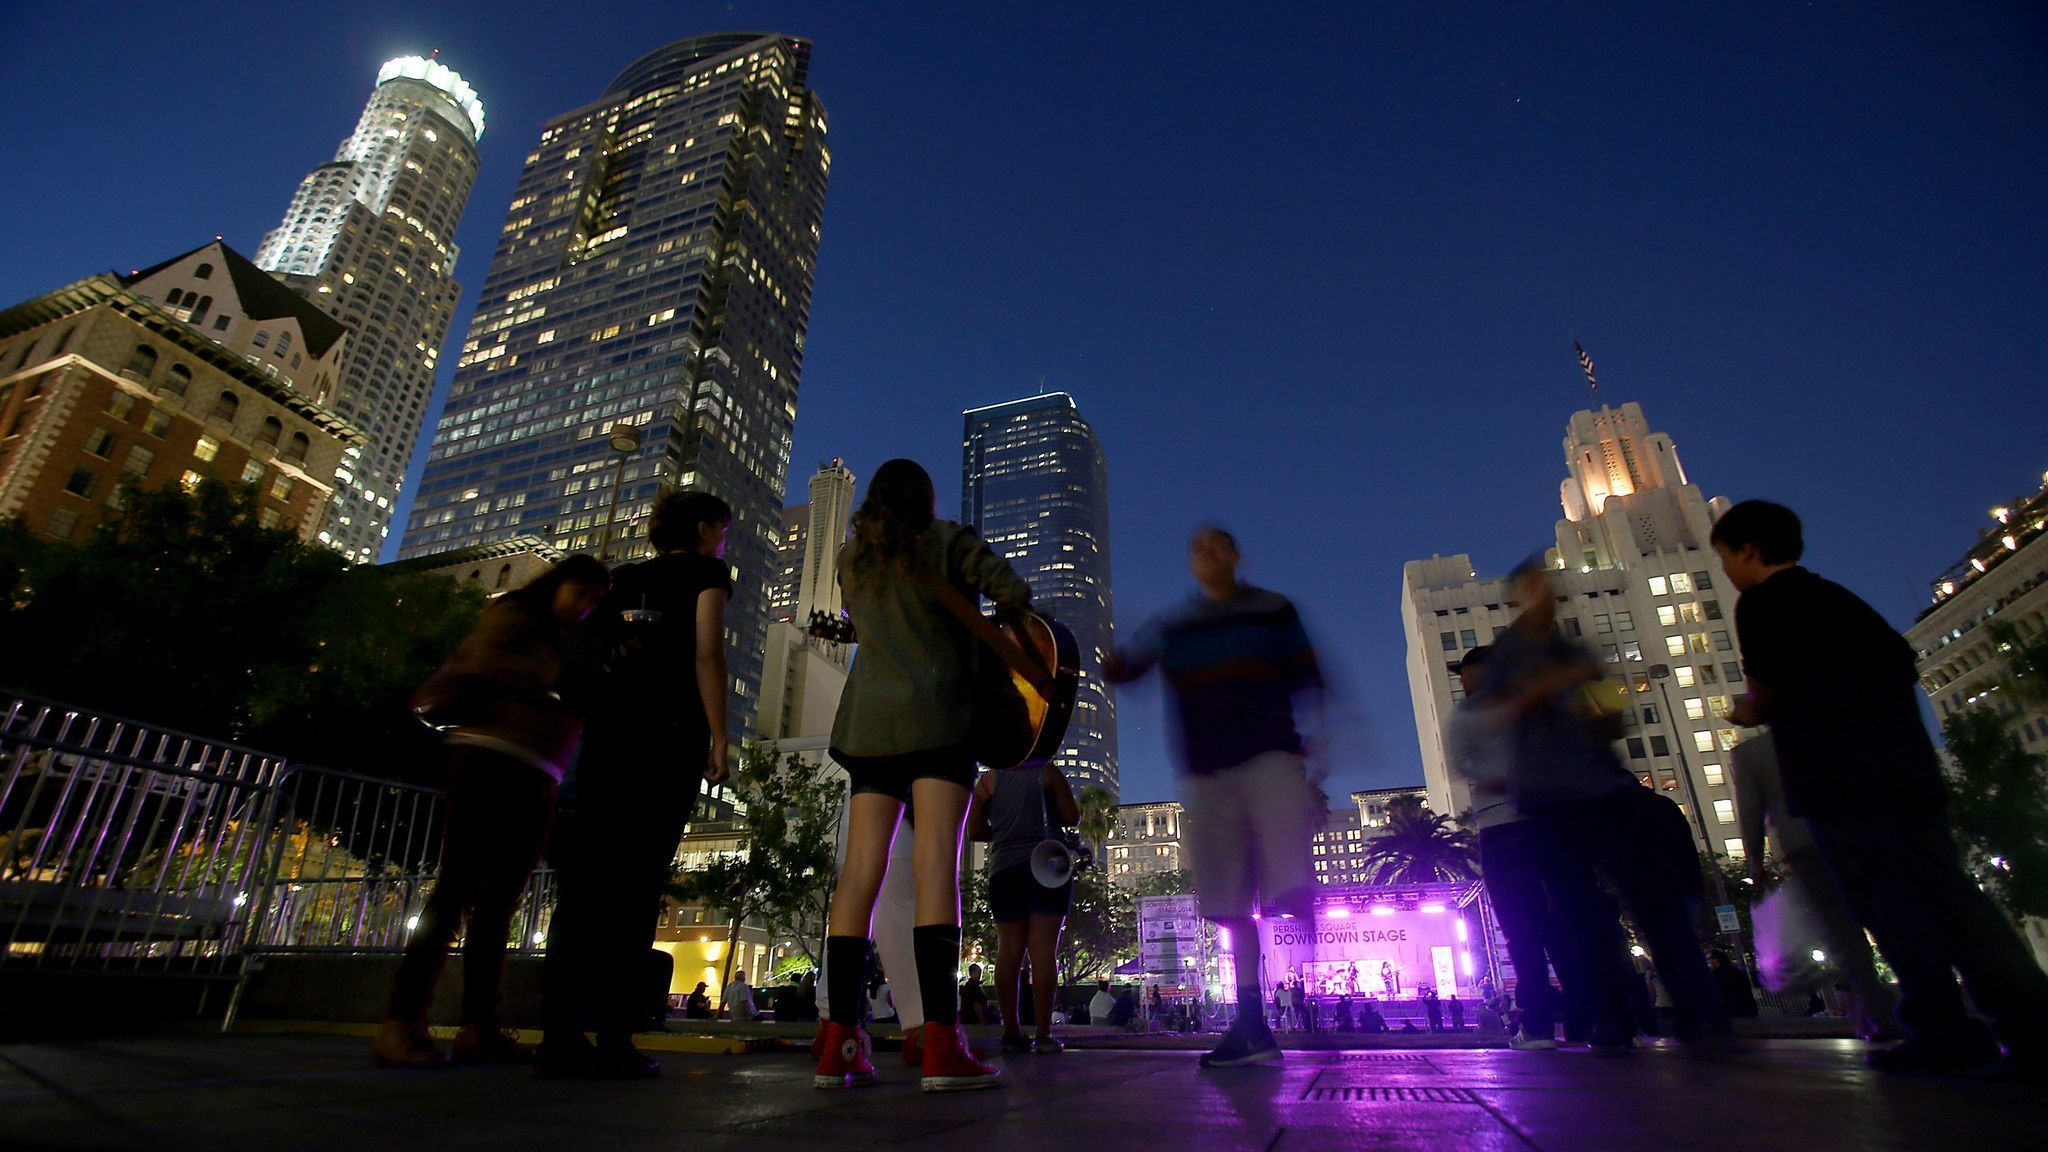 Backed by ACLU, photographer sues for right to shoot Pershing Square summer concert series